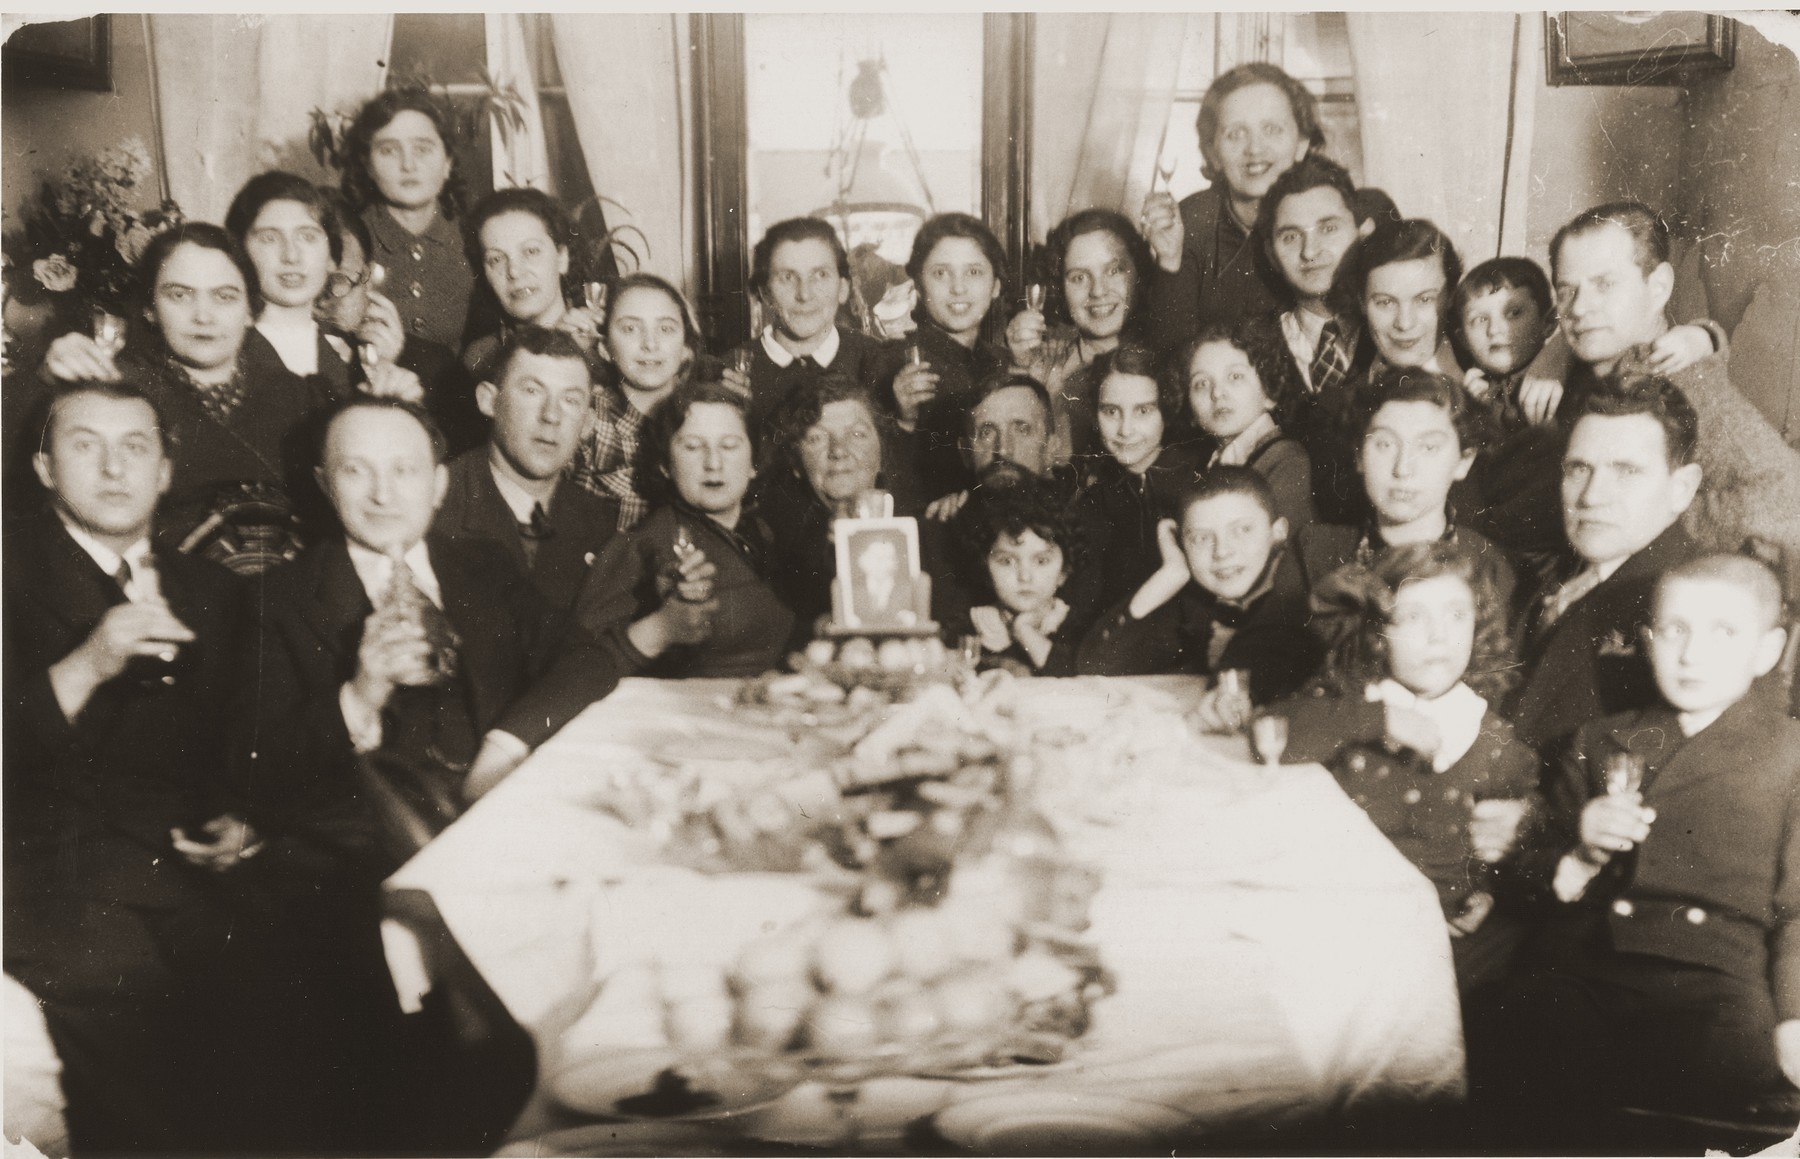 Family gathering to celebrate the marriage of Bezalel Mintz.  He had moved to Belgium and his photo appears on the center of the table.  Of those pictured only two survived.  From left to right those pictured include Benny Fil, Pola Fil, Ida Fil, Chayale Mintz, Rachel Danishevska, Devorah Danishevska, Syma Mintz Crane, Basel Danishevski, Sorele Mintz, Sashe Lepovski, Zirele Lepovski and Nemale Lepovski.